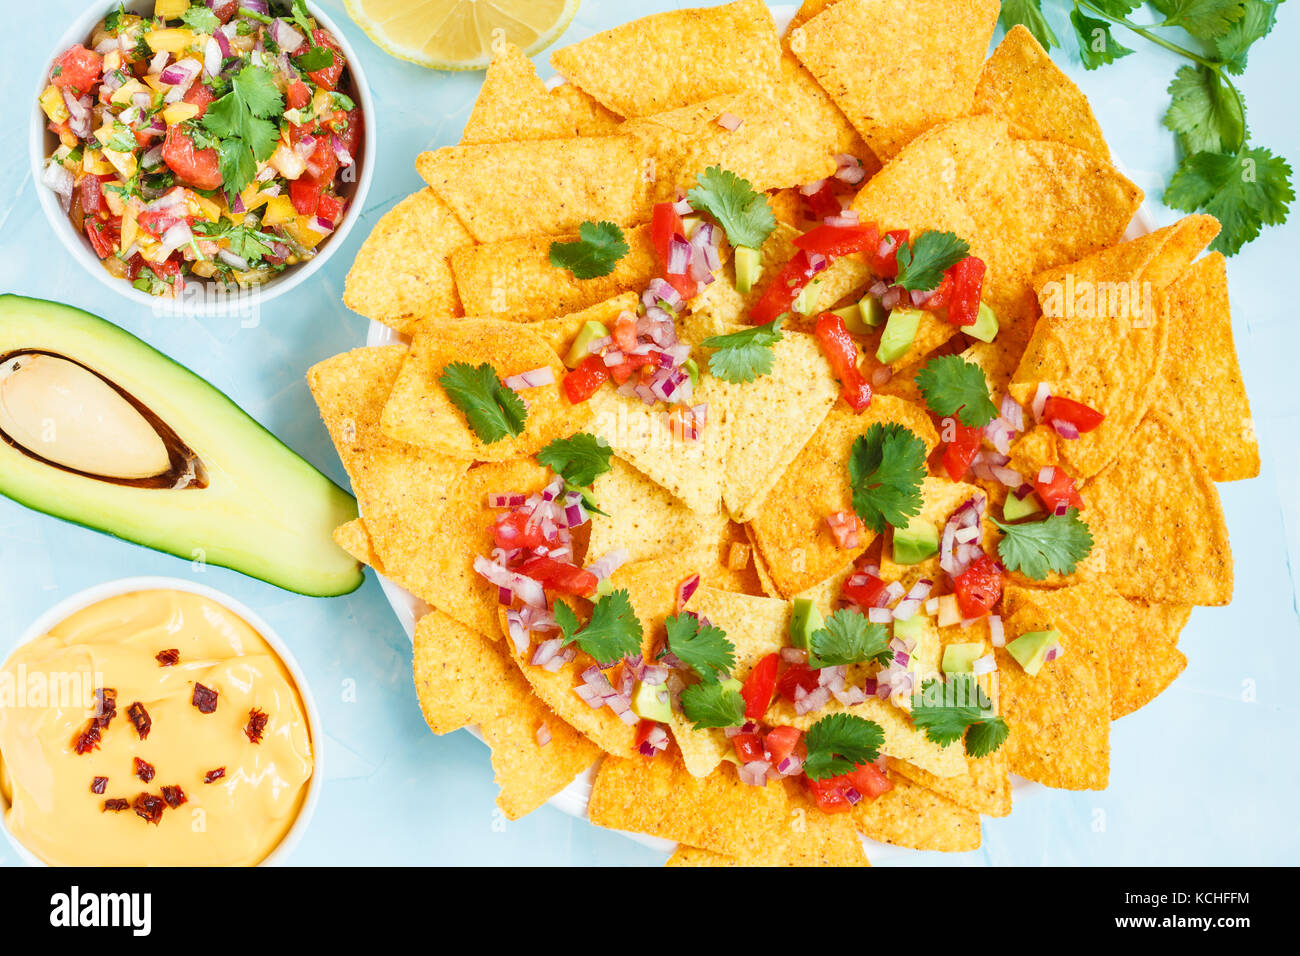 Yellow corn chips nachos with cheese sauce and salsa sauce. Mexican food snack concept. - Stock Image